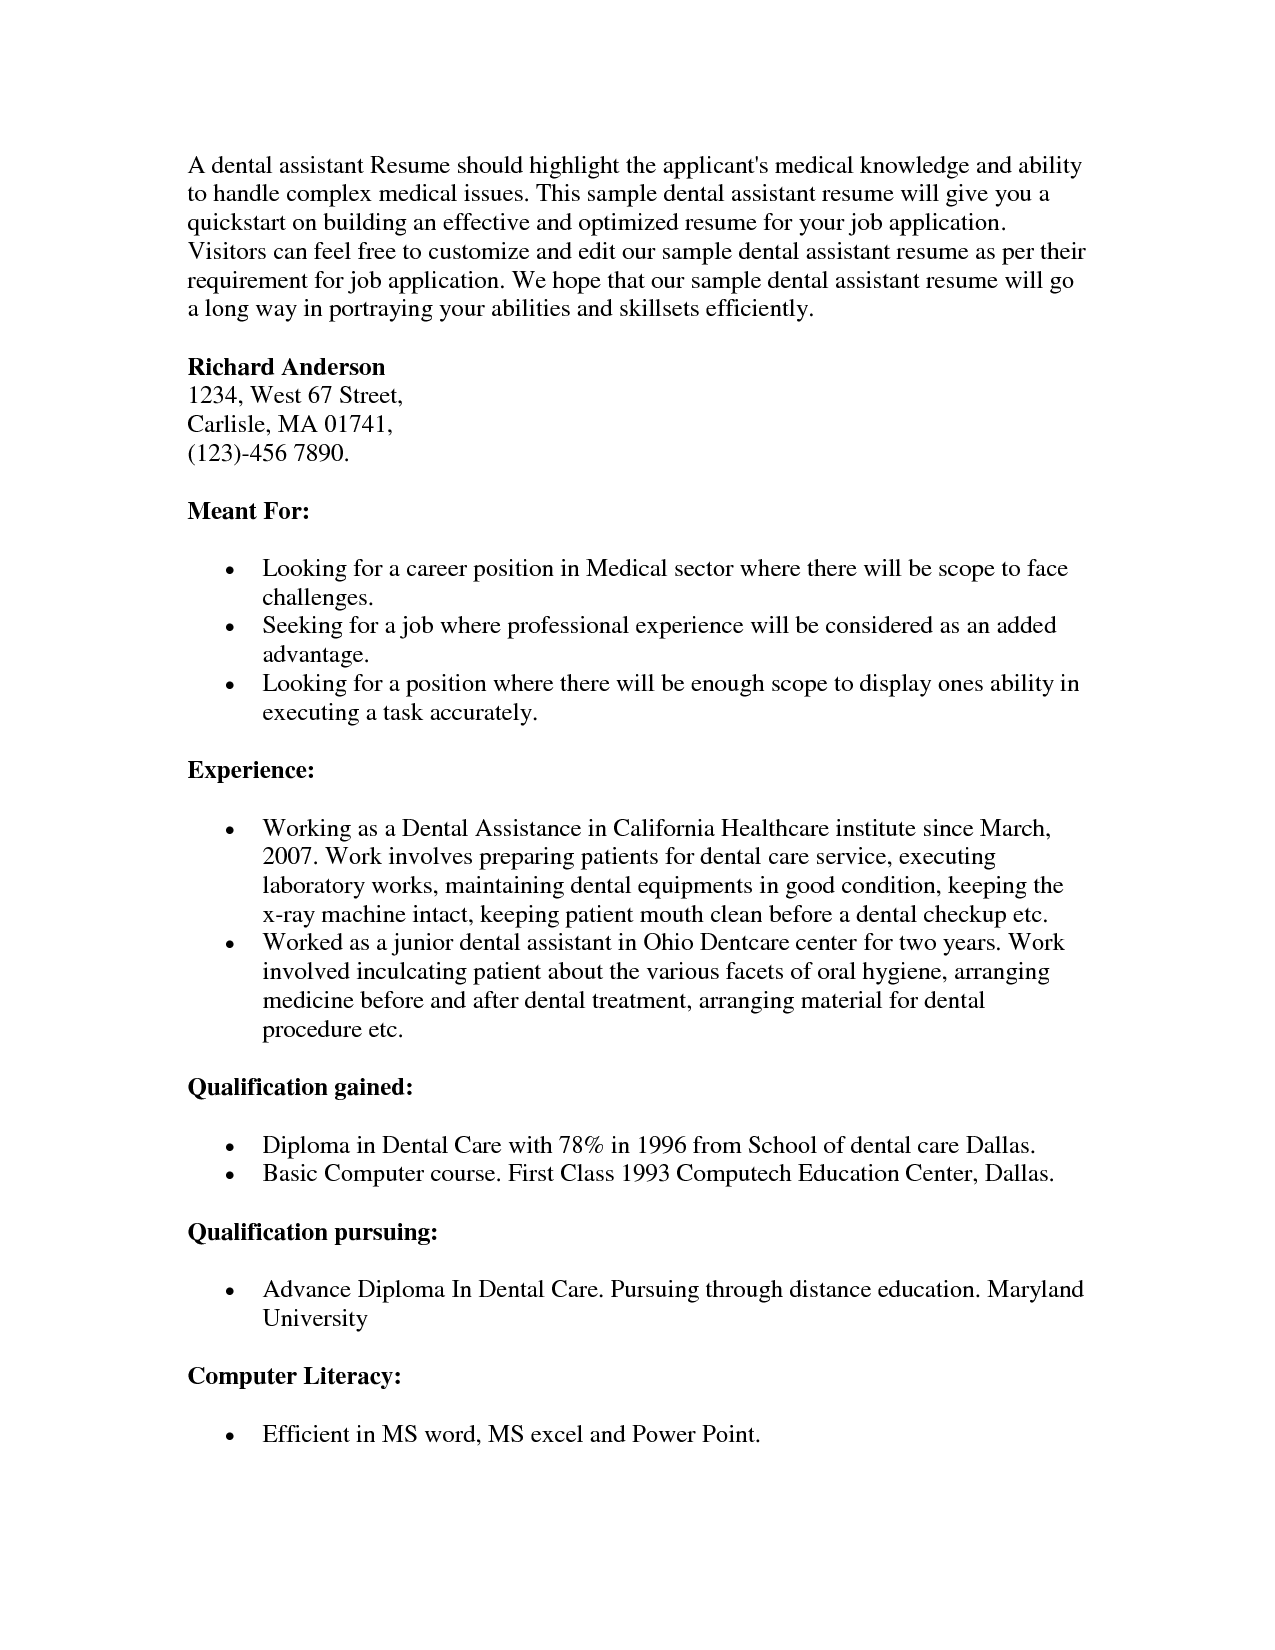 Account executive cover letter entry level. Job hunting? Write a great  cover letter using